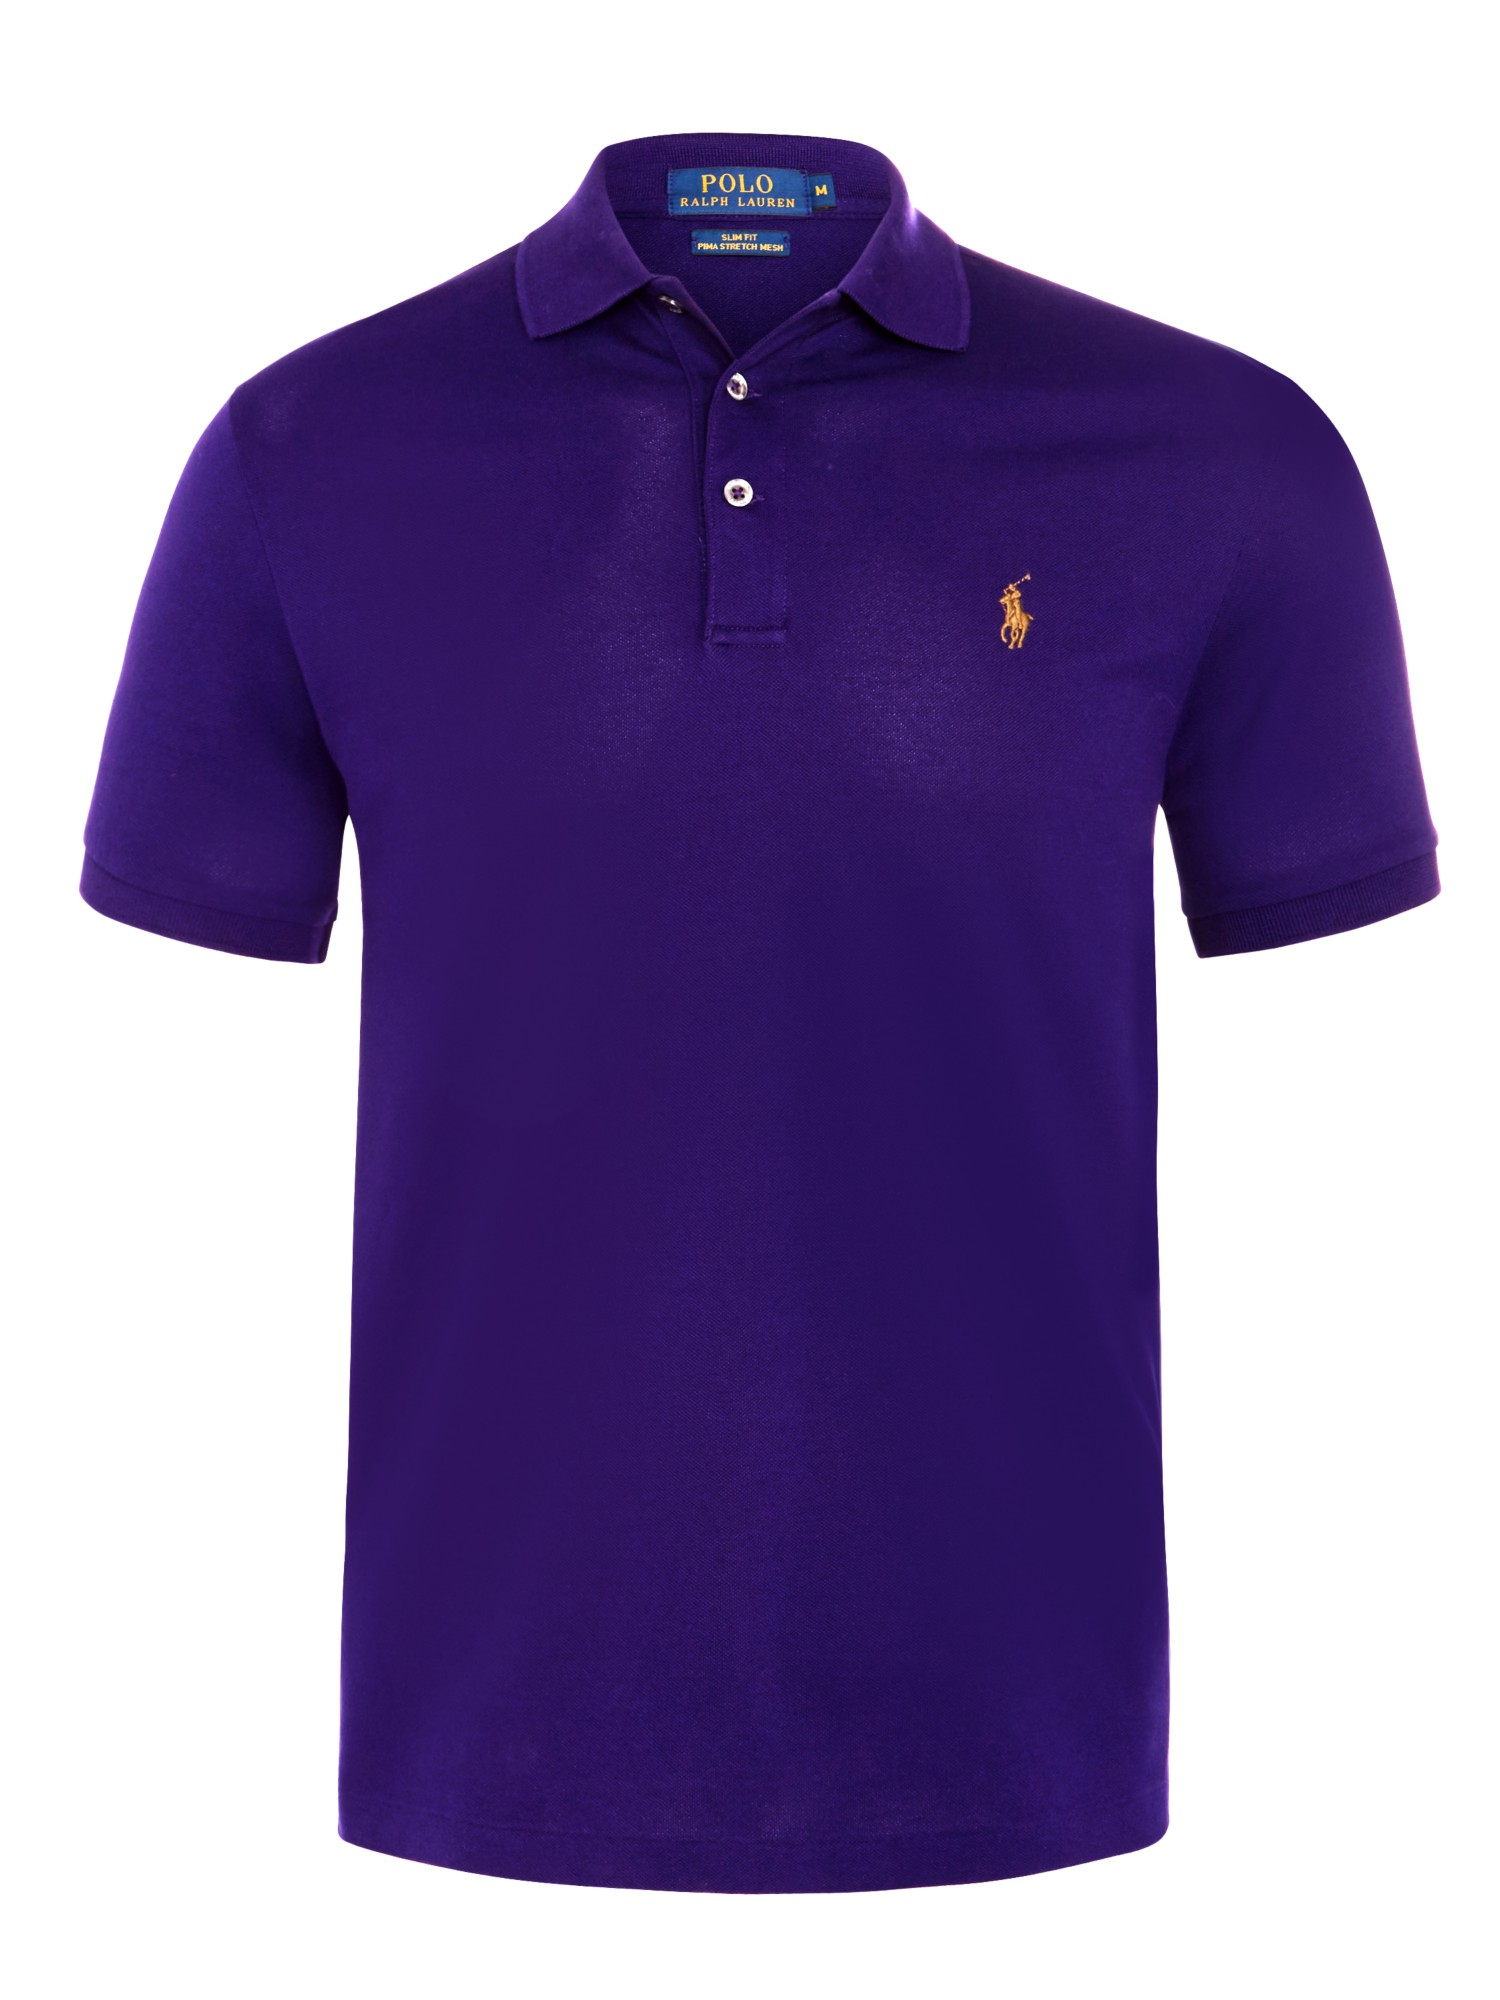 polo ralph lauren slim fit polo shirt in purple for men lyst. Black Bedroom Furniture Sets. Home Design Ideas